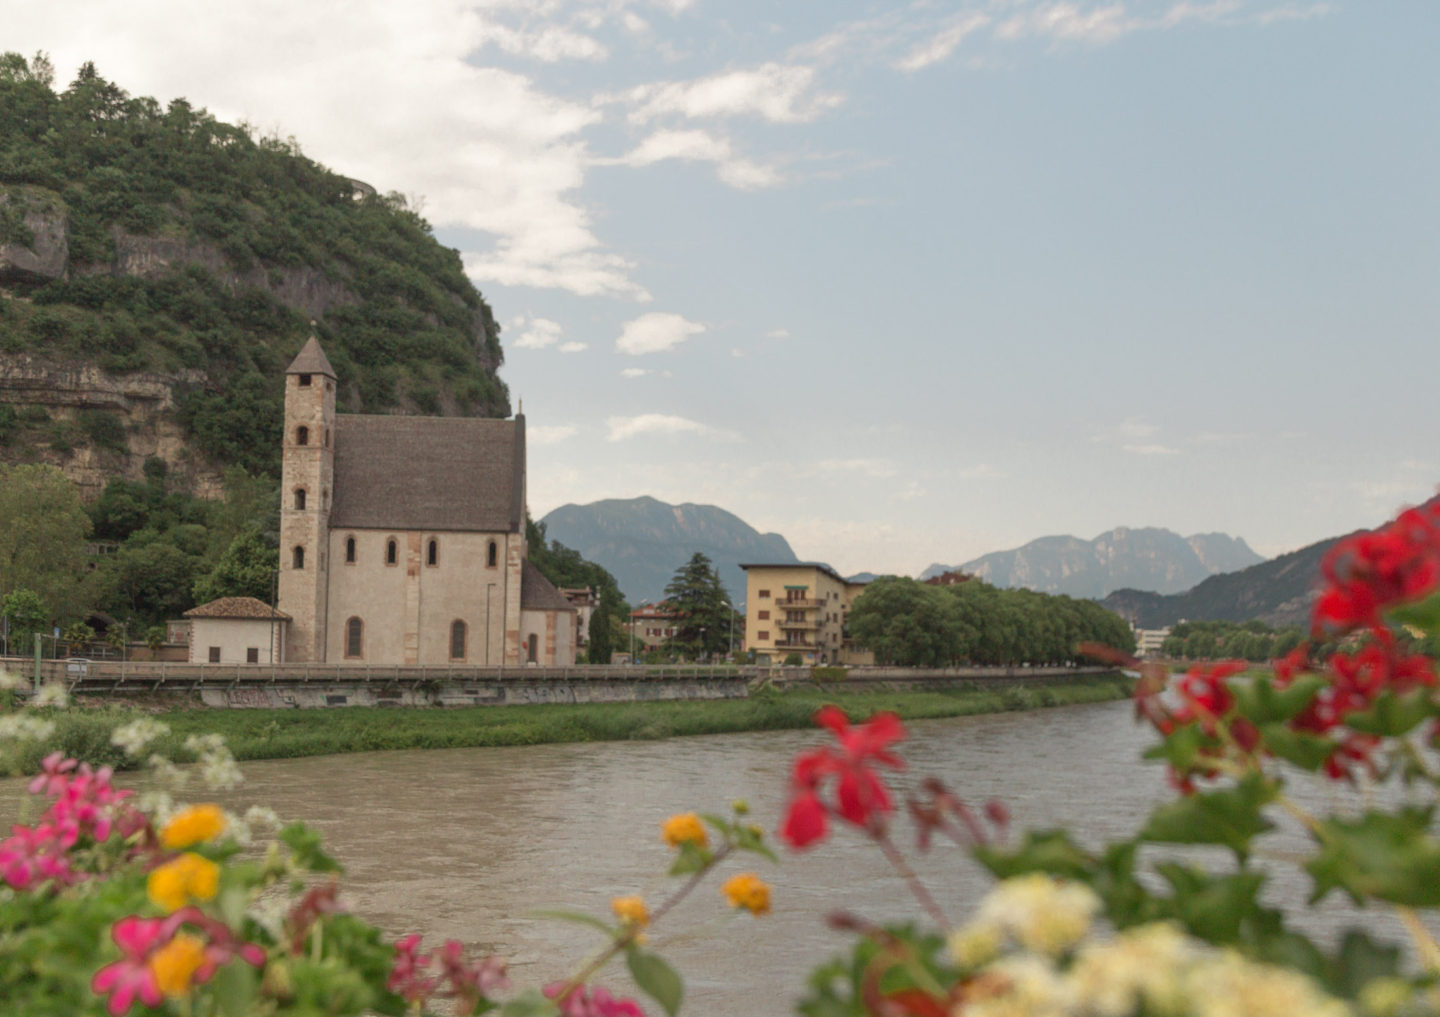 view of river in Trento with red, yellow, and pink flowers in forefront and a stone house in the background